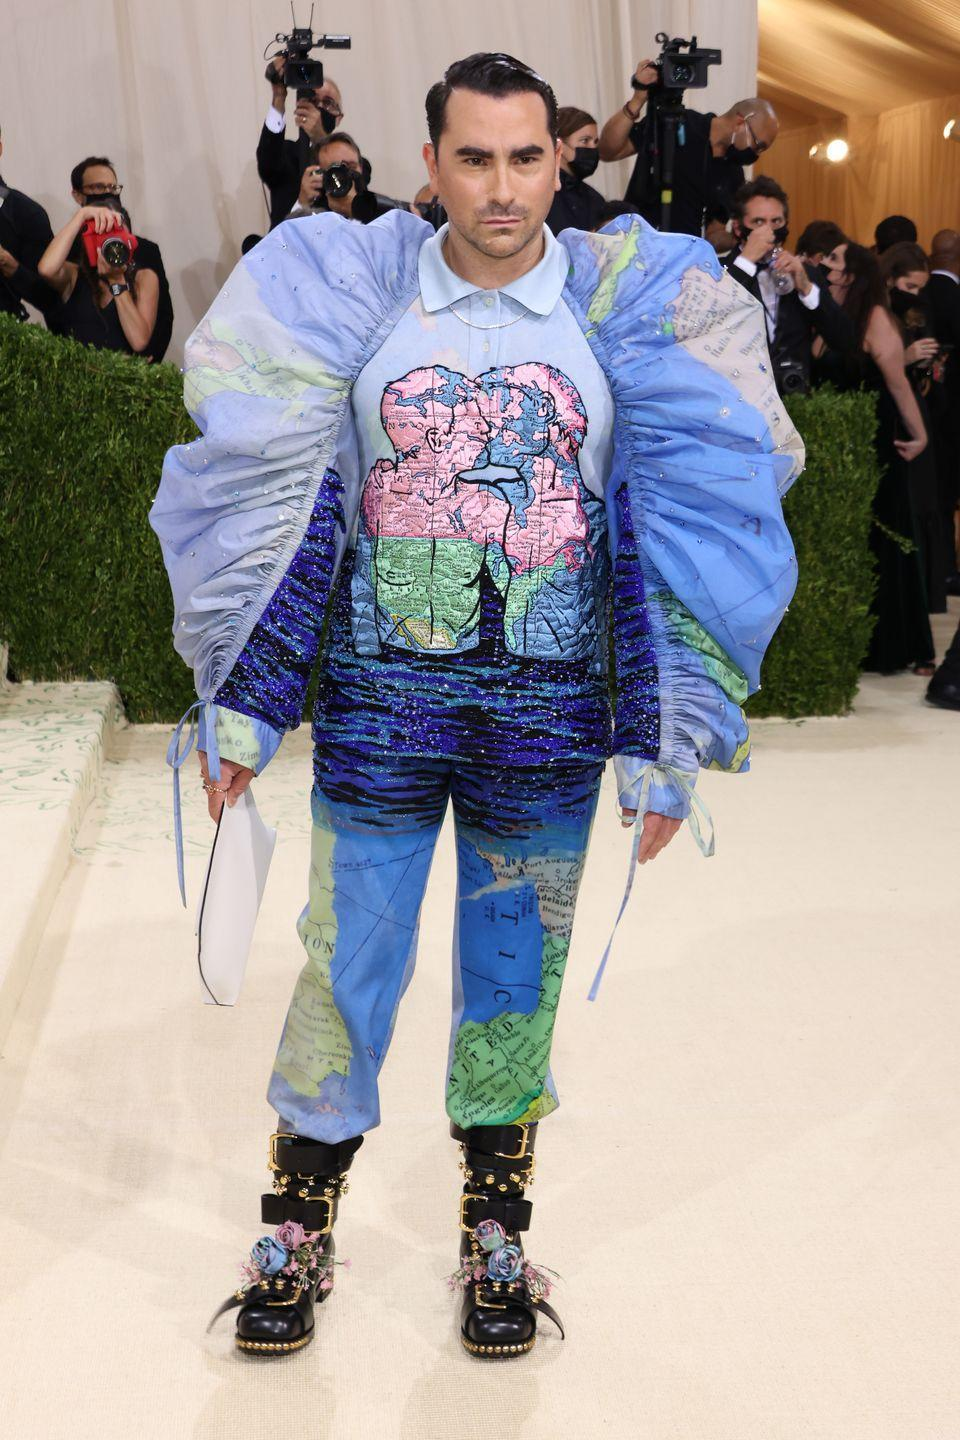 <p>Because this is what we want from our Met Gala red carpet: pure cray with a strong message. While this outfit might seem ridiculous on the surface, it's paying homage to the work of American queer artist and activist David Wojnarowicz and defiantly imagining a world of free queer expression. We absolutely love it. </p>